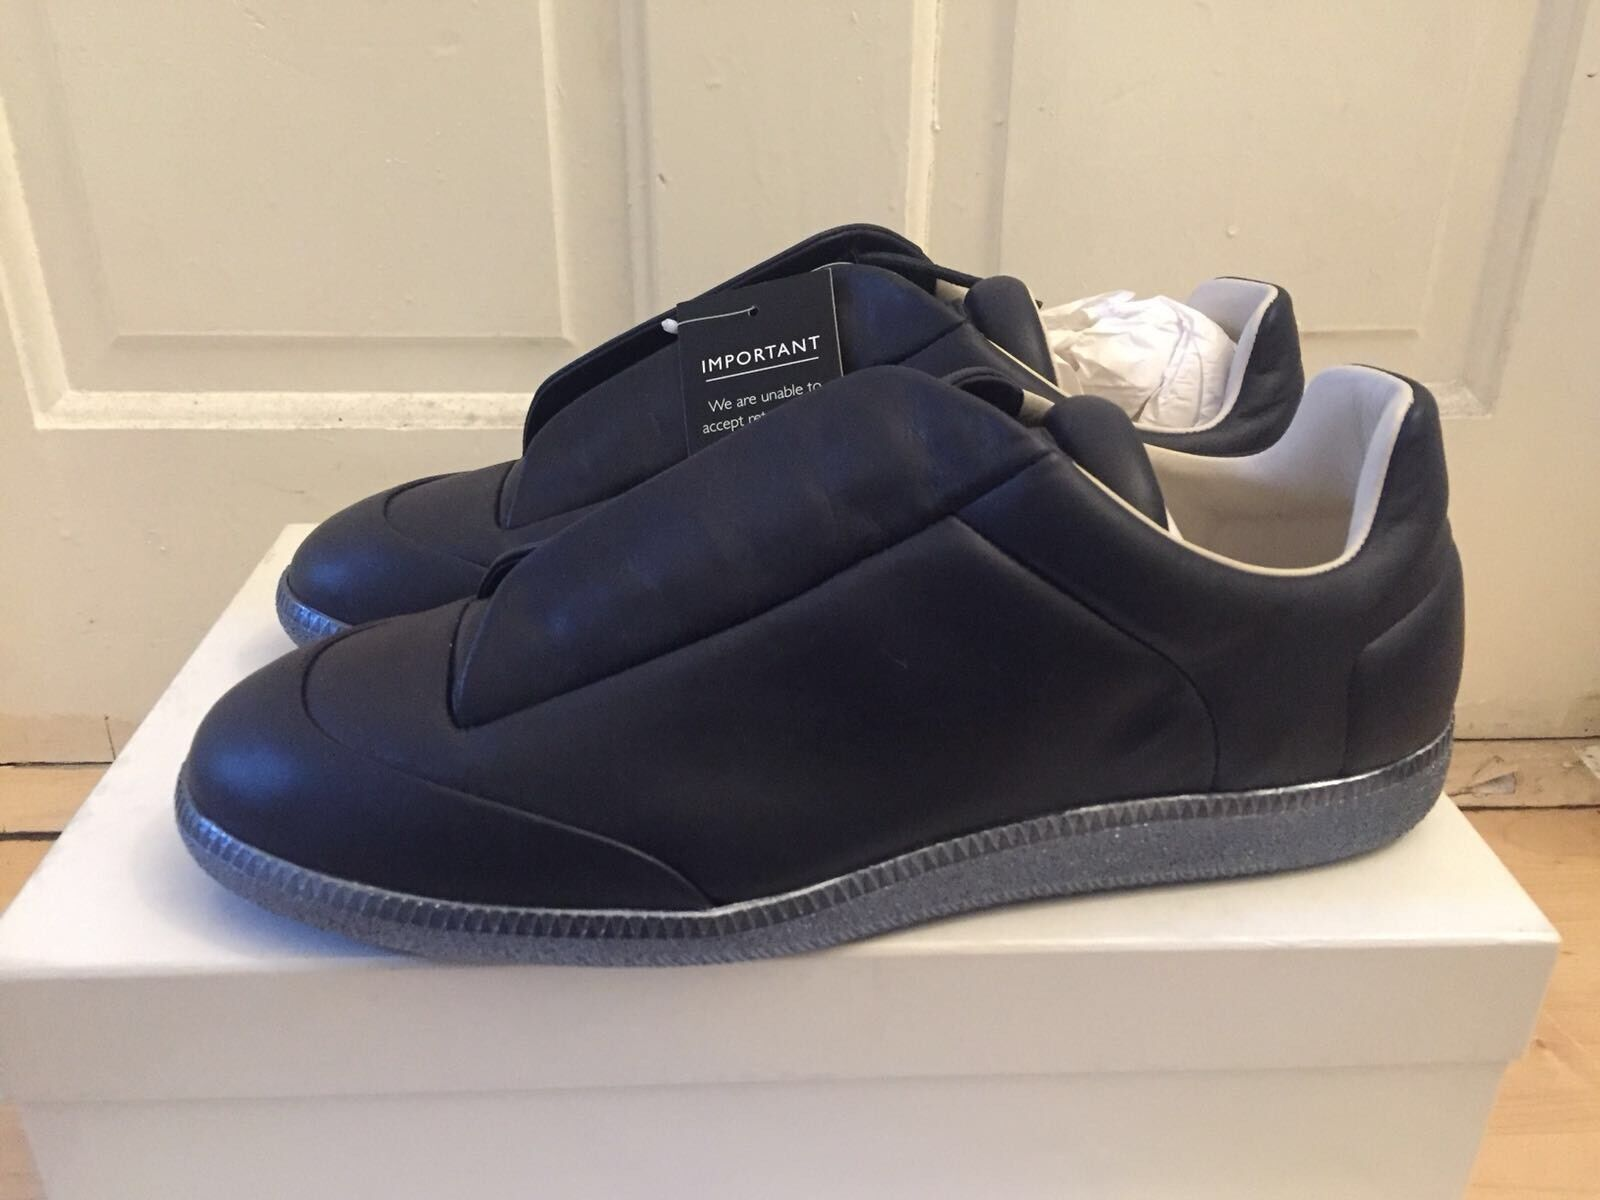 MAISON MARGIELA Navy bluee Future Low Top Trainers